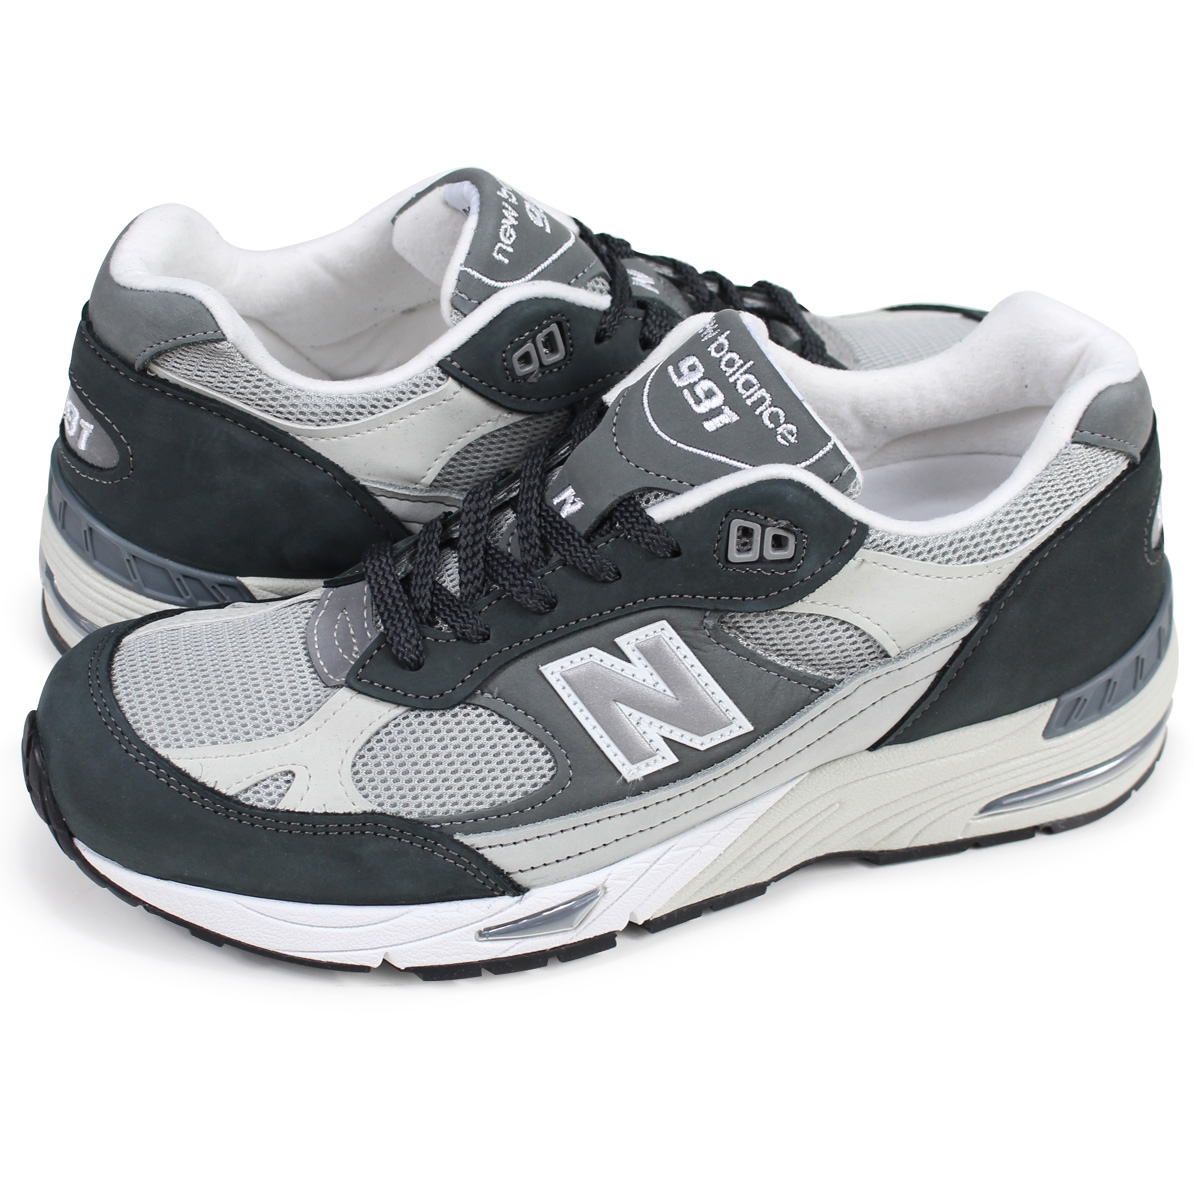 new balance M991XG New Balance 991 men's sneakers D Wise MADE IN UK gray [the load planned additional arrival in reservation product 1017 containing]